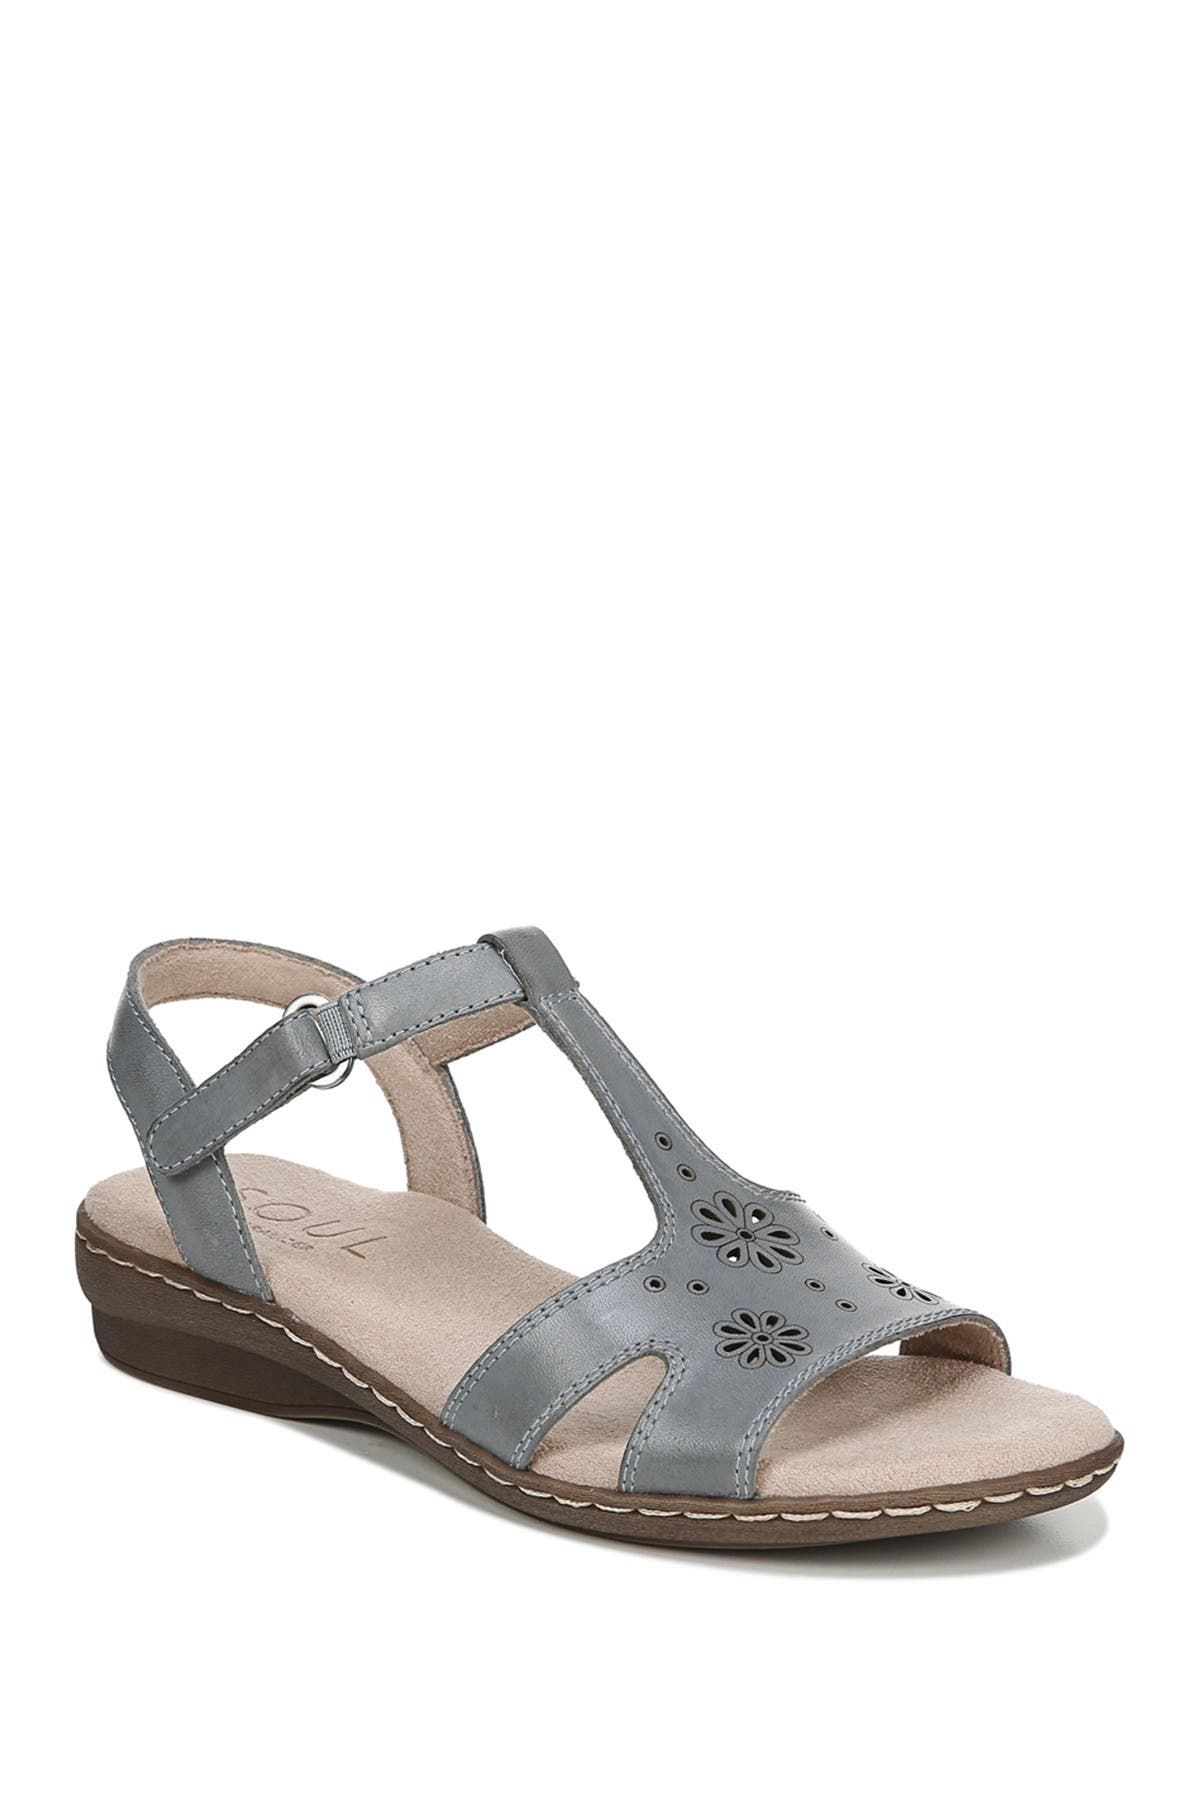 Image of SOUL Naturalizer Brio Leather Slingback Sandal - Wide Width Available